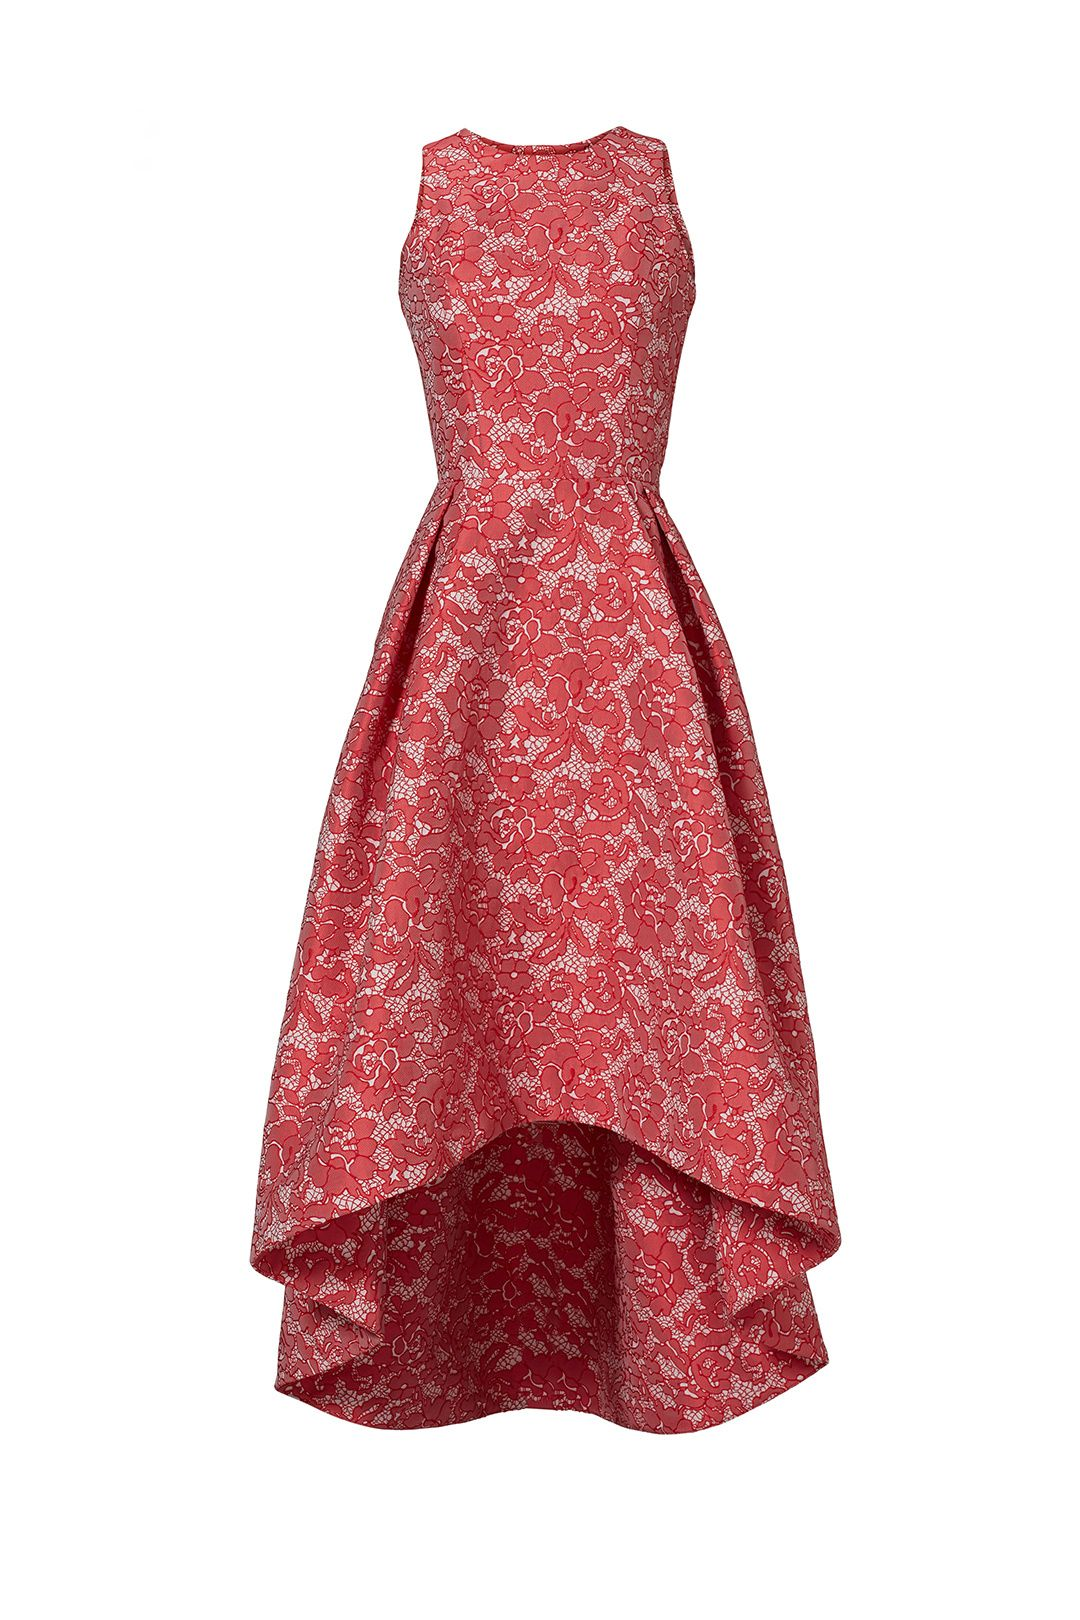 ML Monique Lhuillier Red Abstract Floral Dress | Sewing/Refashioning ...